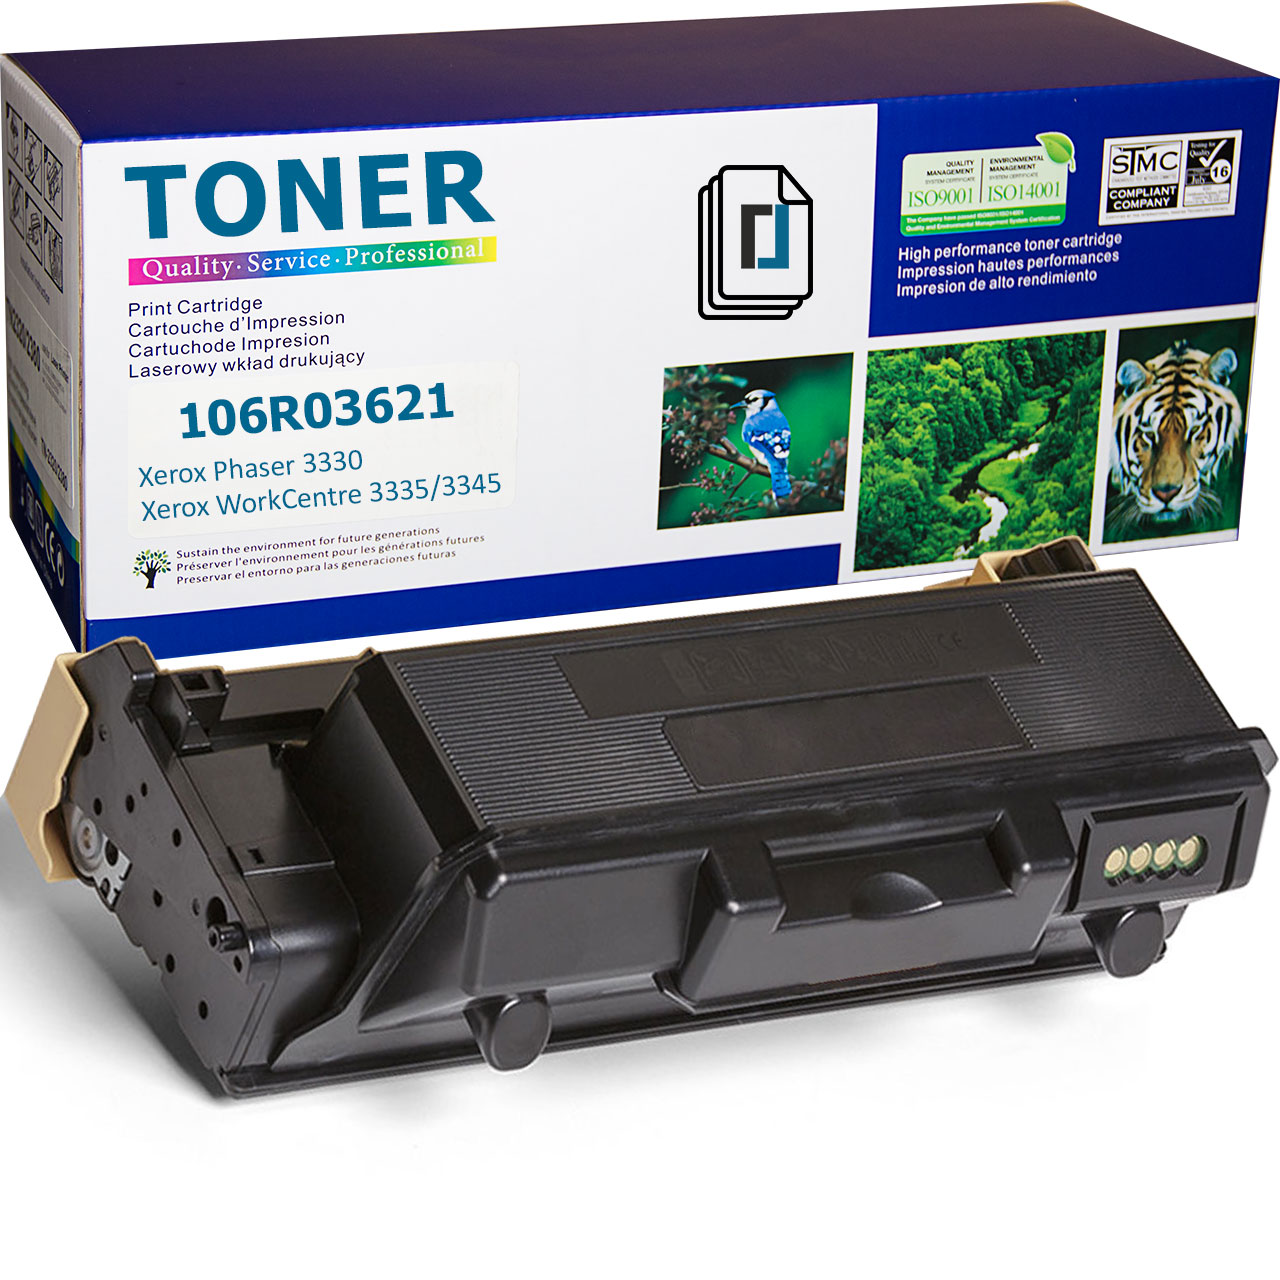 106R03621 Toner Cartridge compatible with Xerox WorkCentre 3345